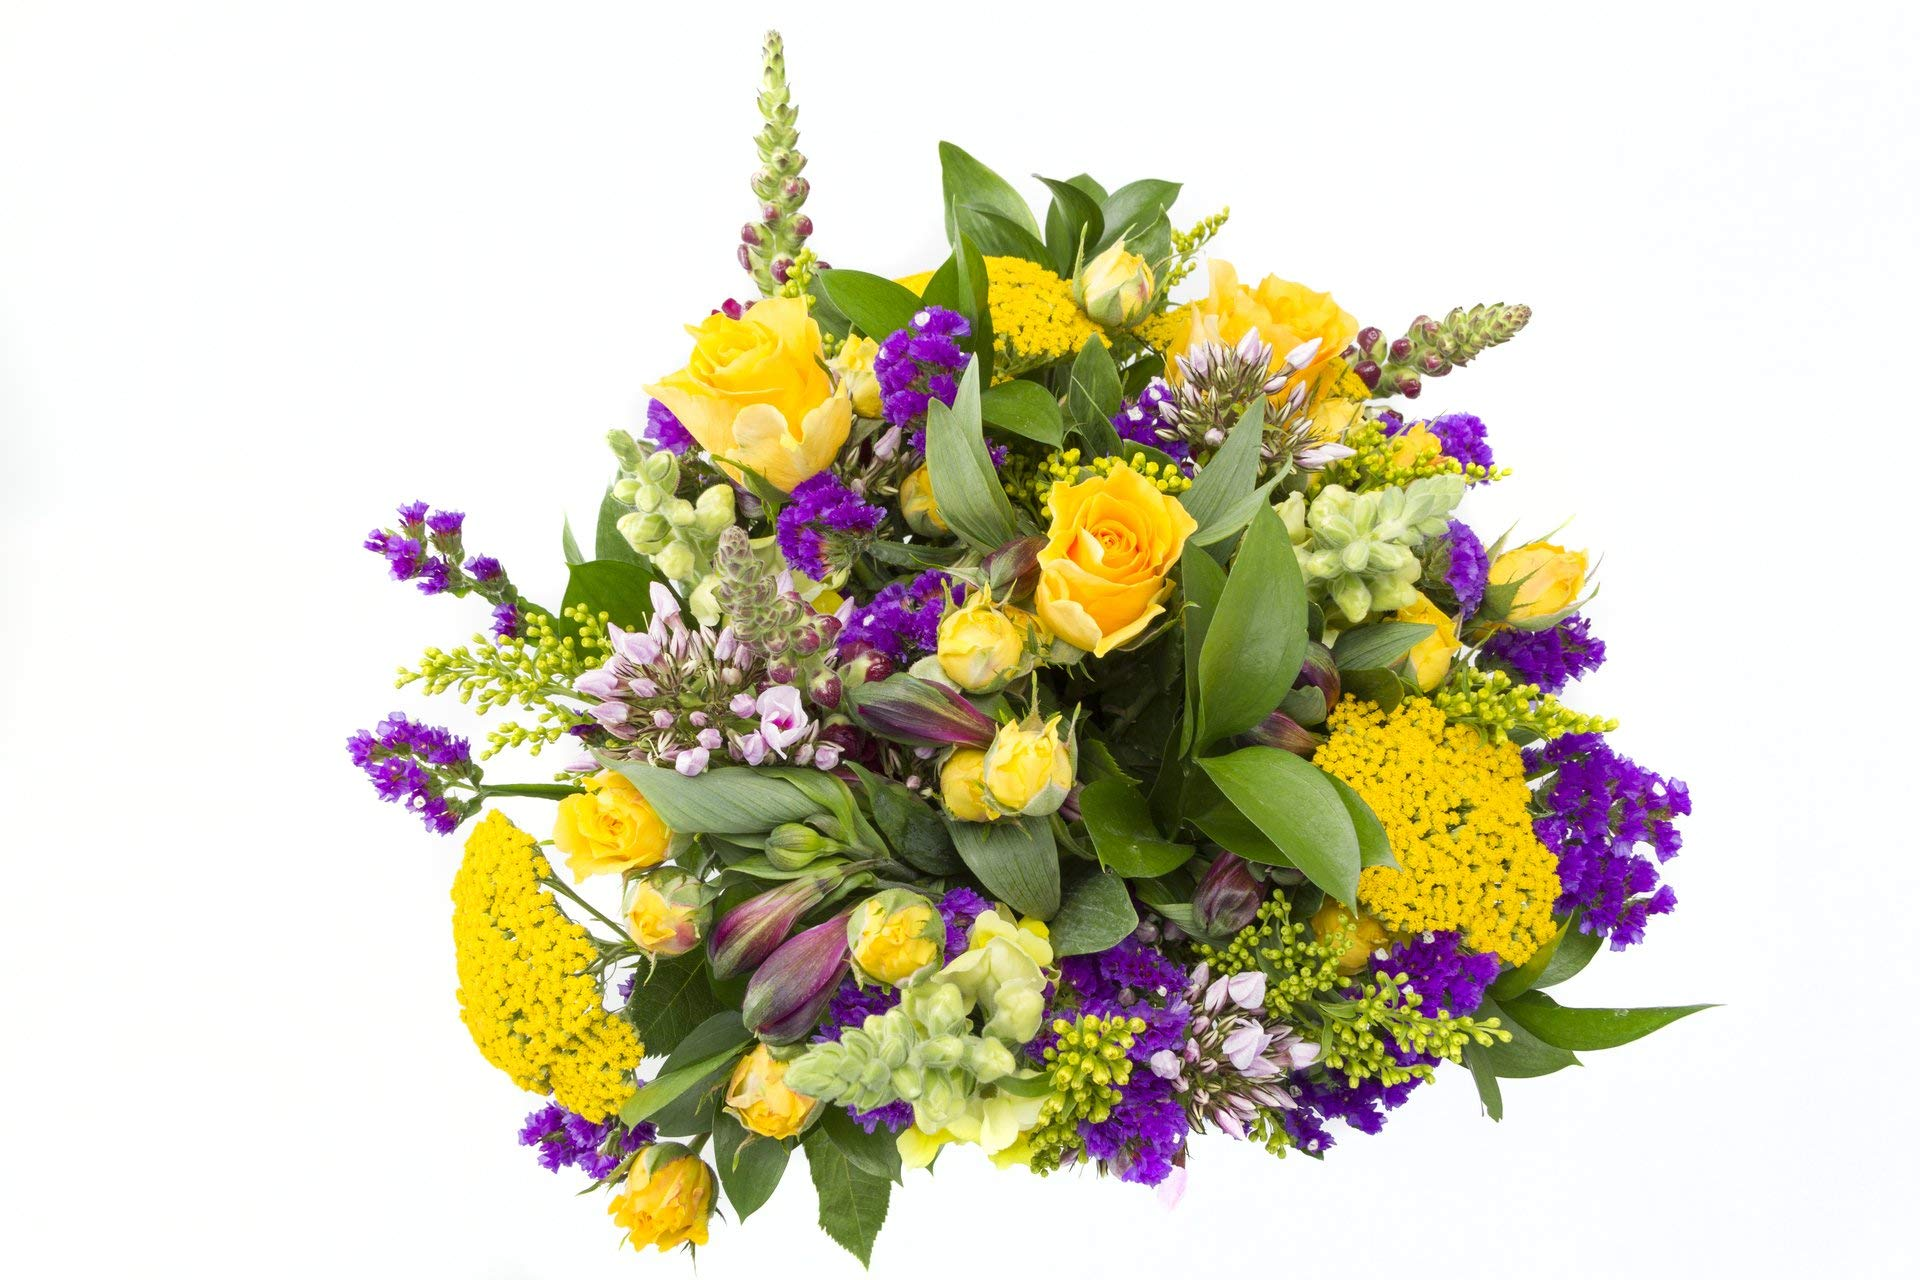 Chichi Party Purple and Yellow Flowers with Roses, Snapdragons, and More Sustainably Grown and Harvested, No Vase Included by BloomsyBox (Image #1)